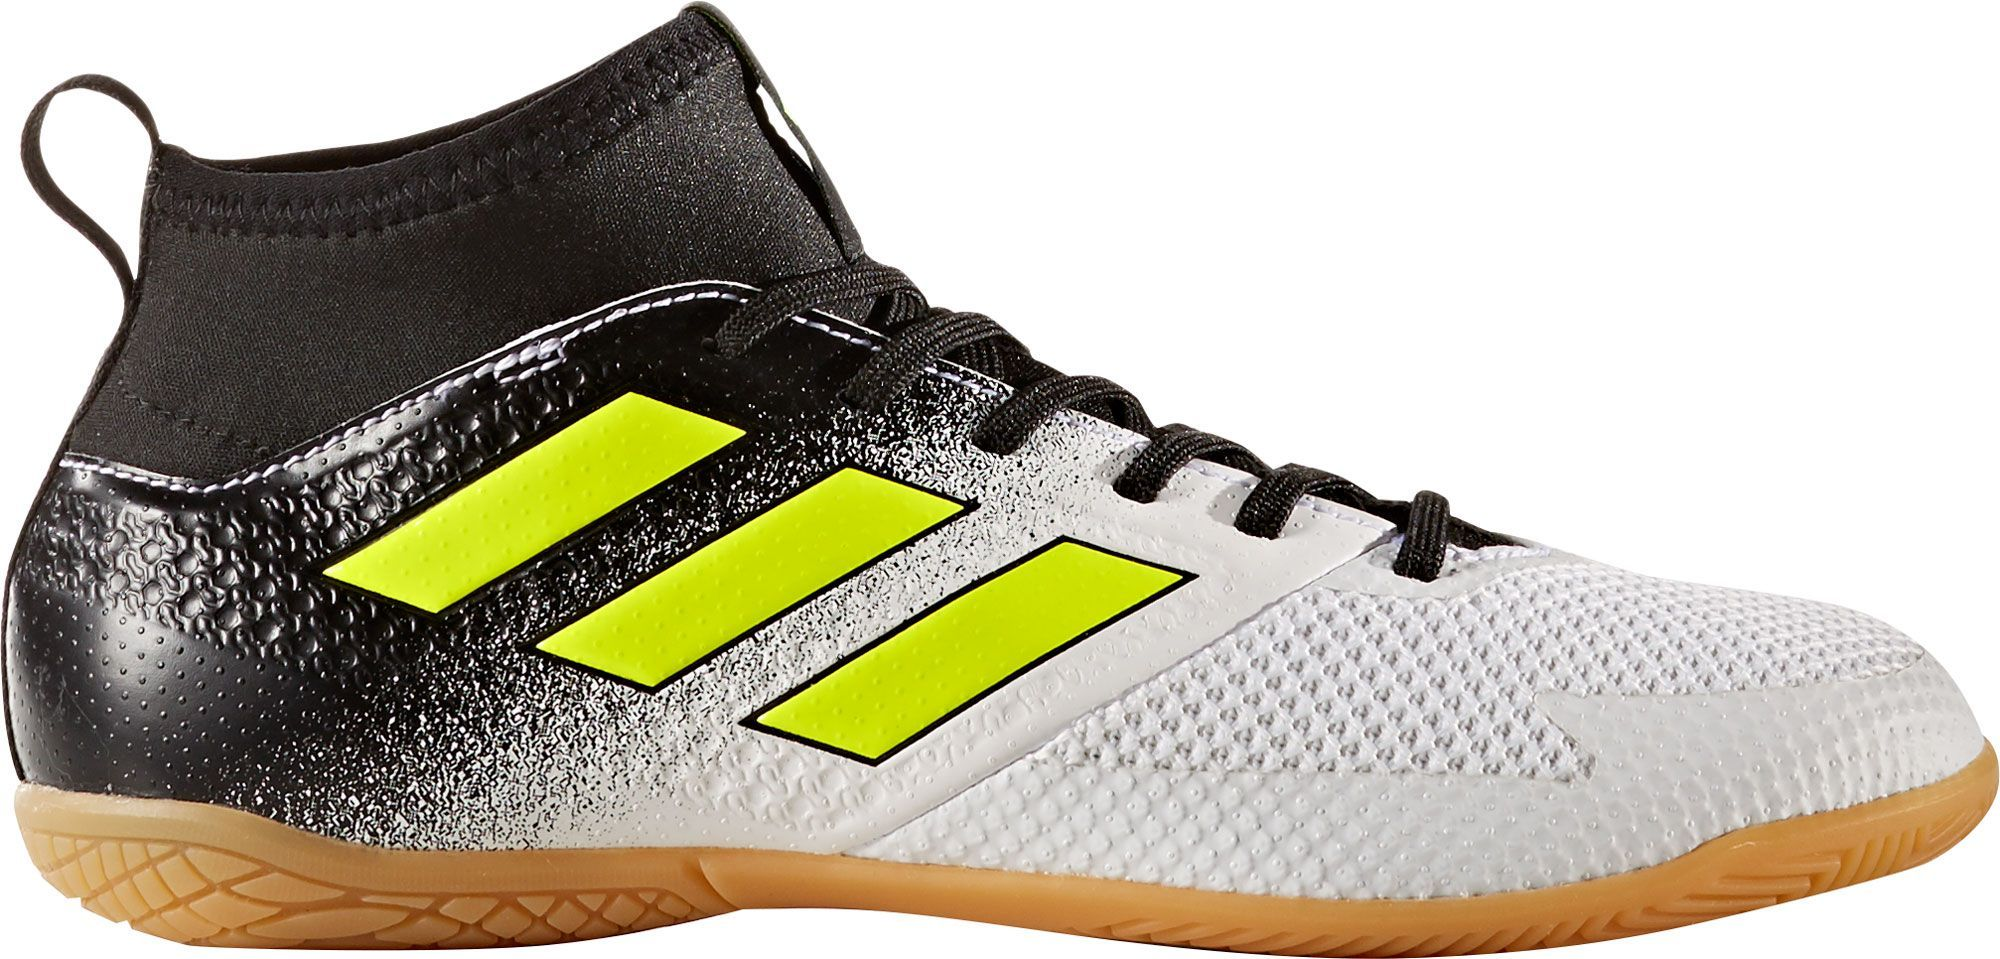 d9283a69ef89 adidas Kids' Ace Tango 17.3 Indoor Soccer Shoes | Products | Adidas ...